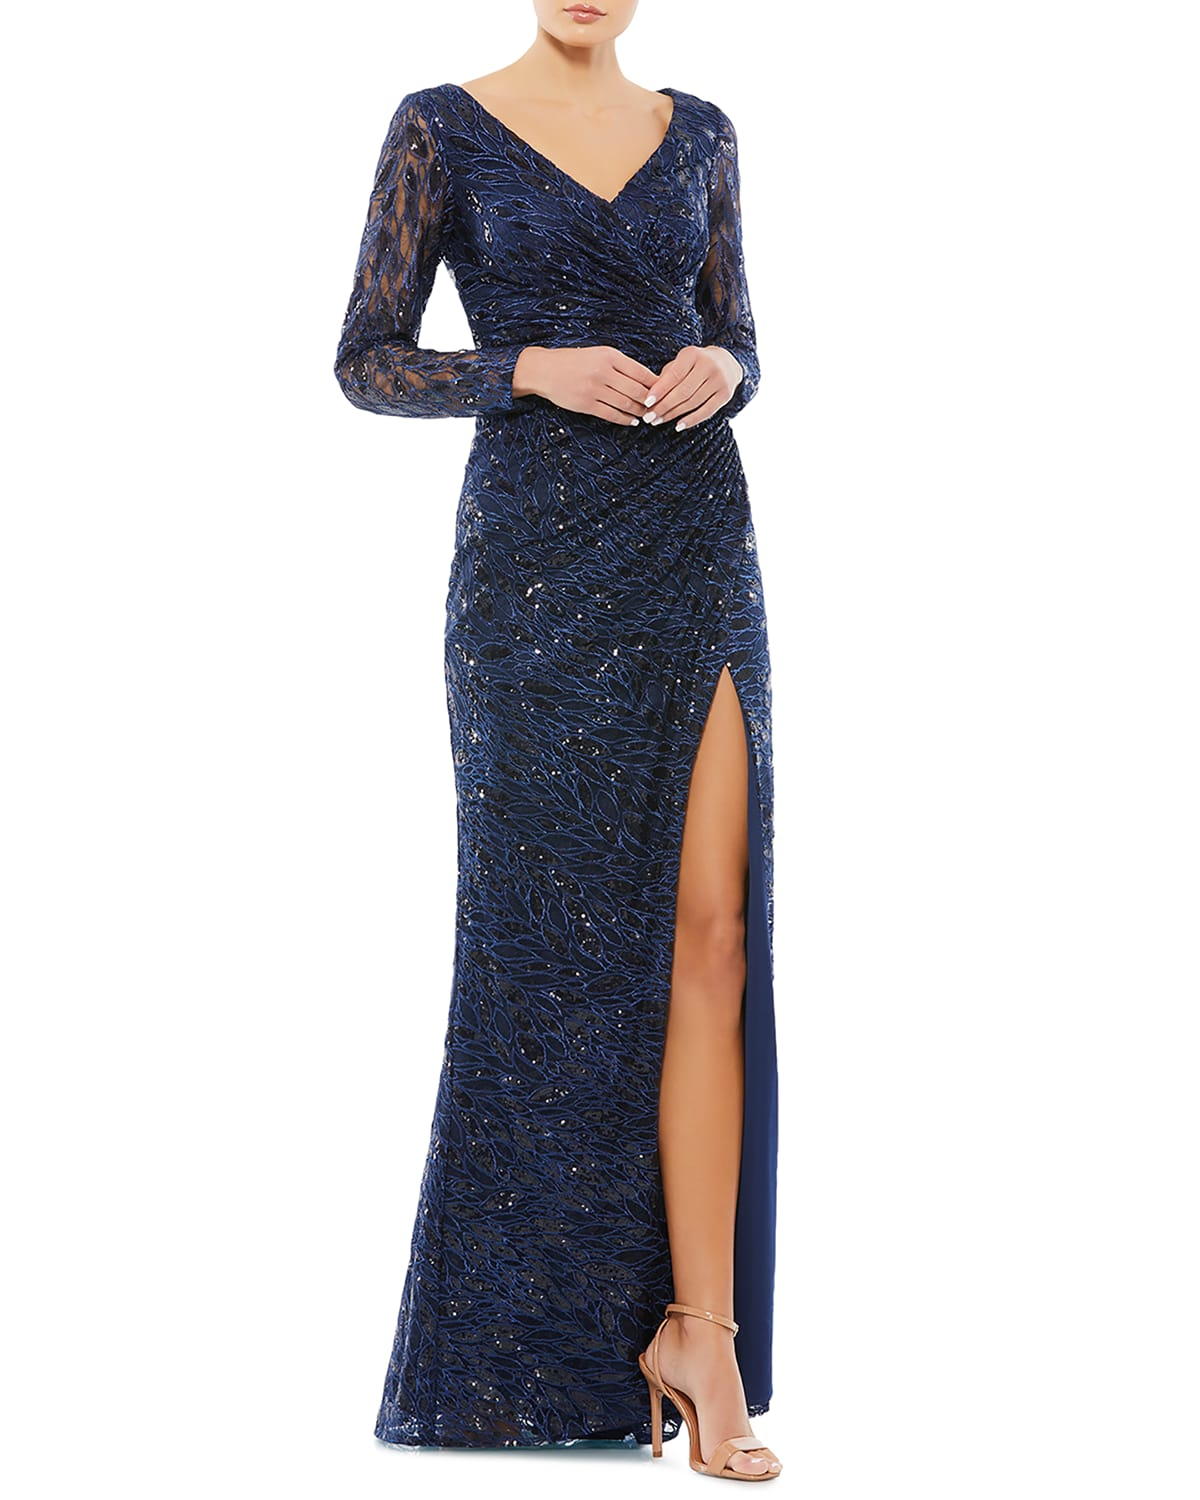 Sequin Lace Long-Sleeve Wrap Gown